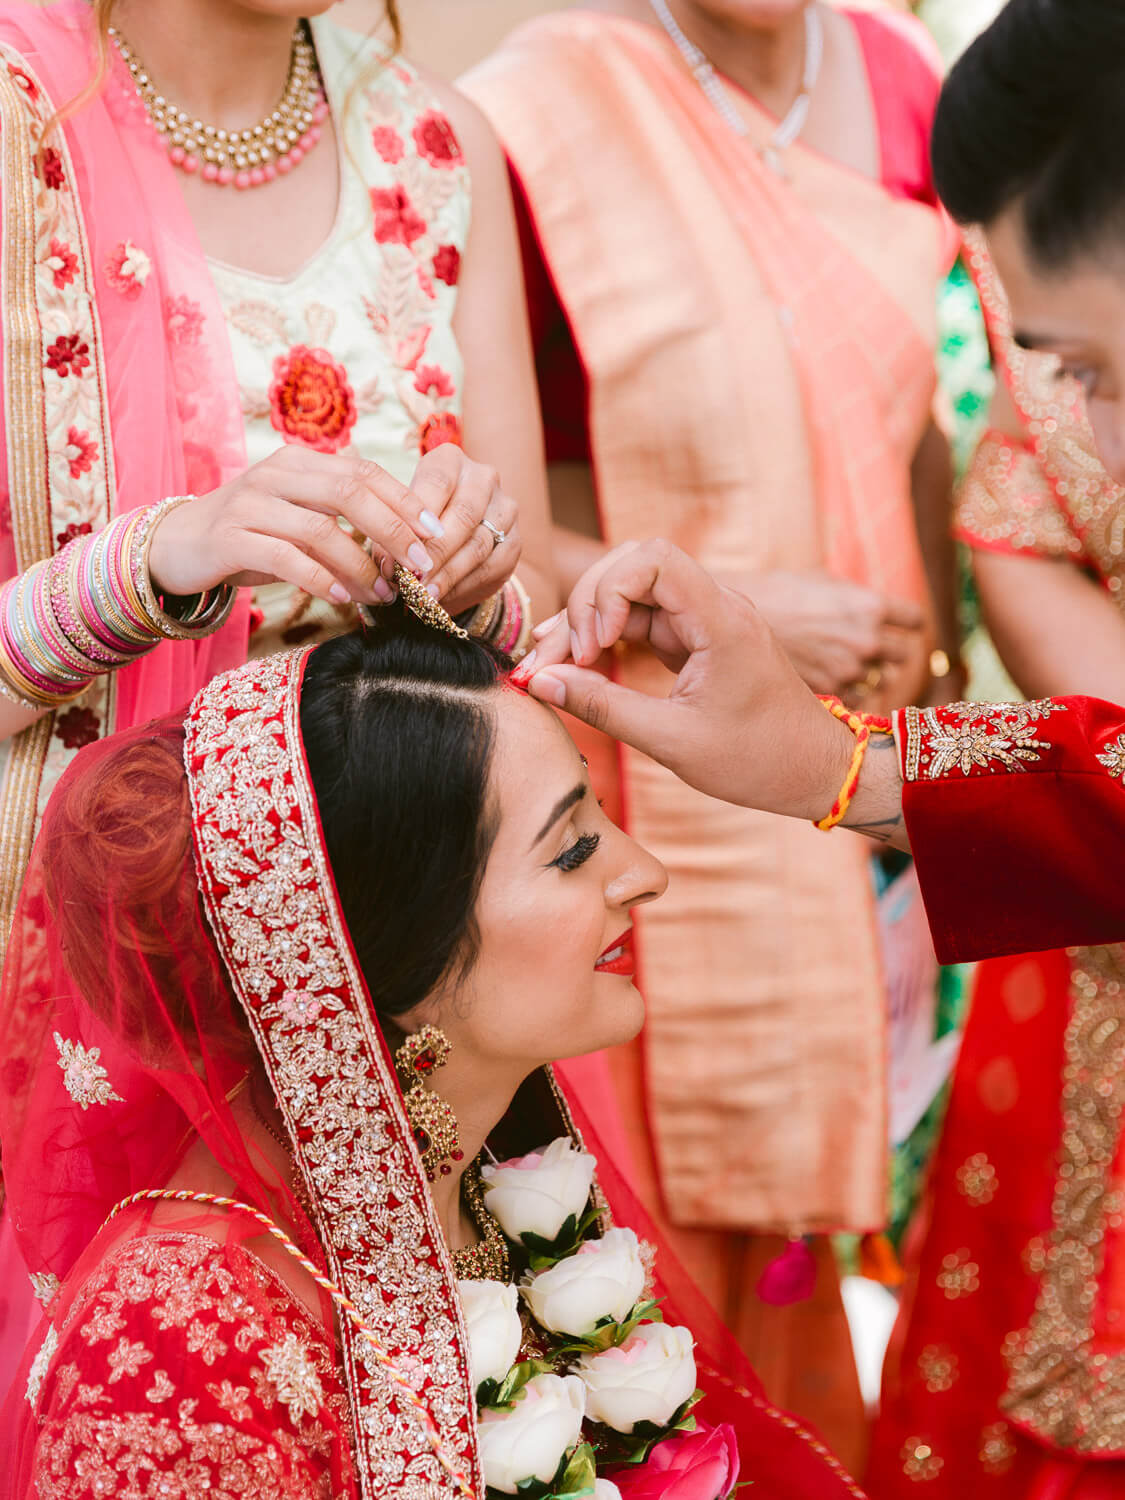 Hindu wedding ceremony detail by Portugal Wedding Photographer